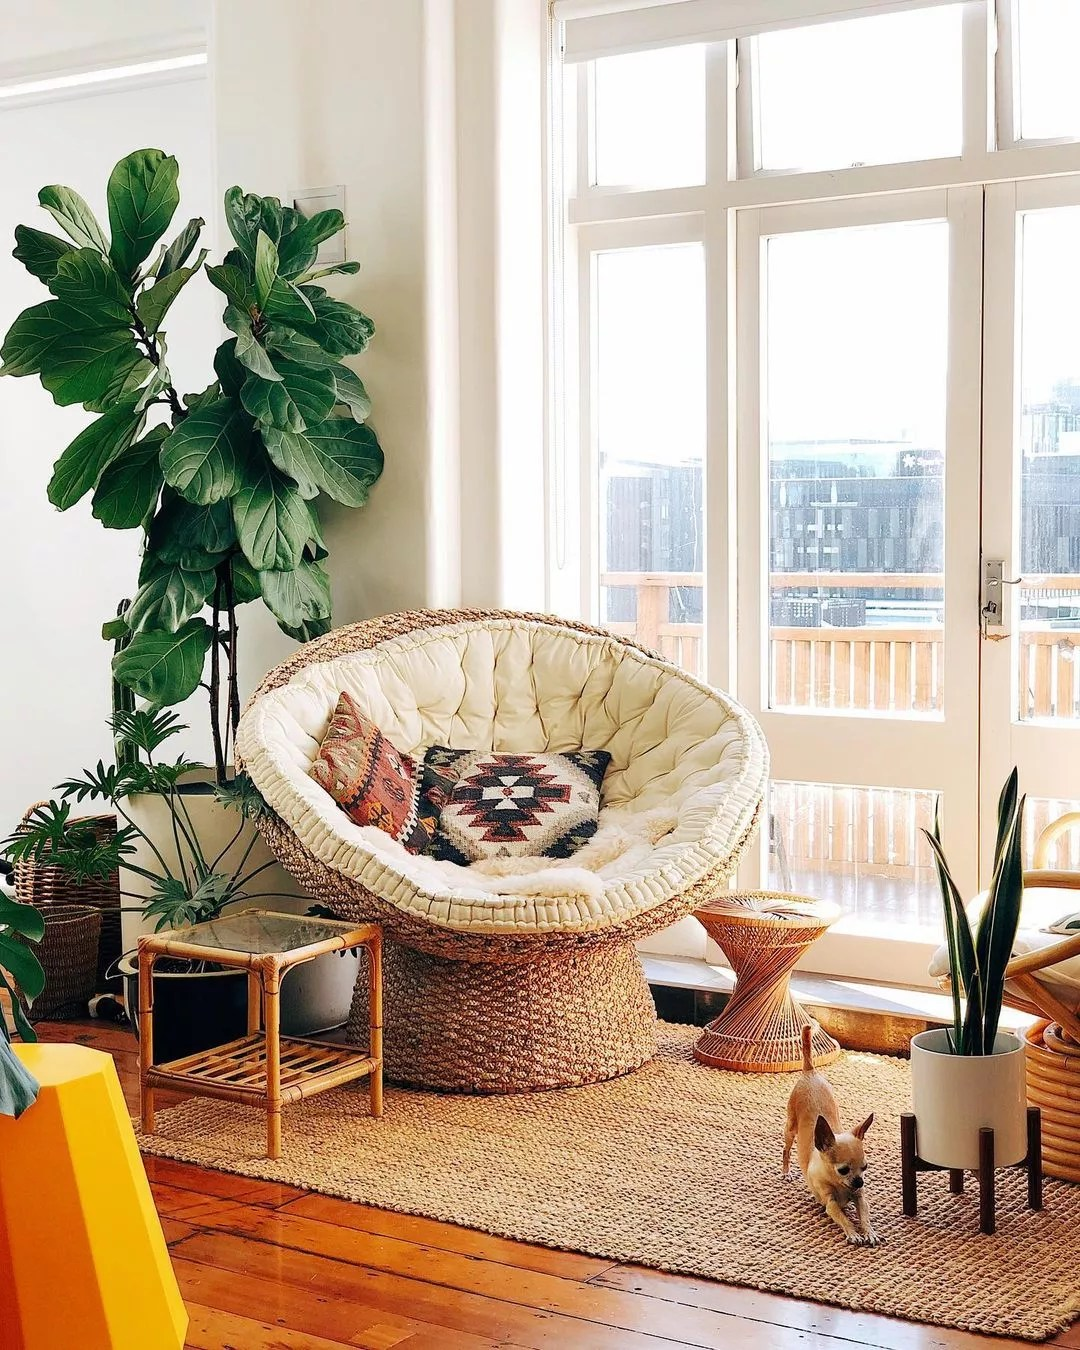 Chihuahua stretches in front of a bamboo side table, rattan papasan chair, spun bamboo side table, and various plants. Photo by Instagram user @mrcigar.